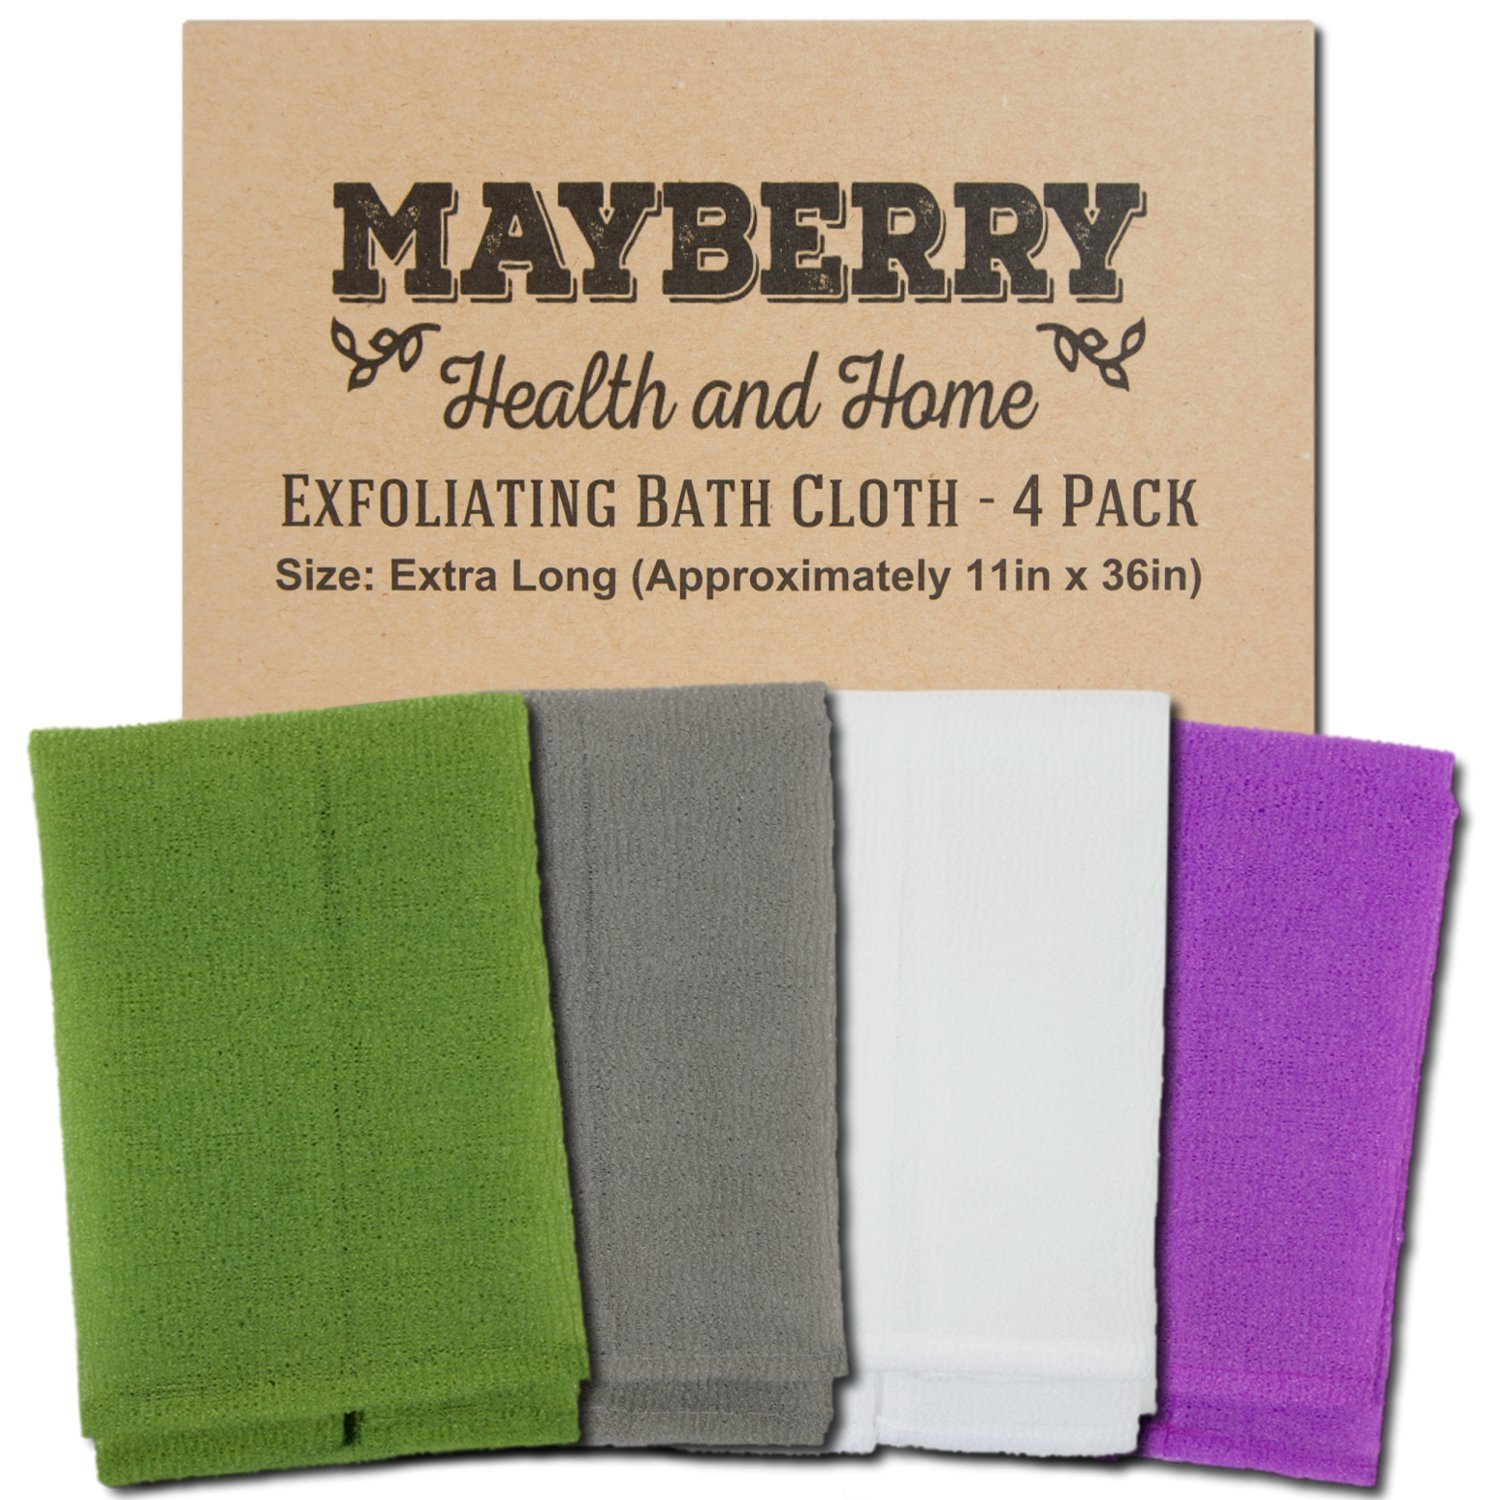 Extra Long (36 Inches) Exfoliating Bath Cloth/Towel (4 Pack) Gray, White, Green, and Lavender Nylon Bath Cloth/Towel, Stitching on All Sides for Added Durability Mayberry Health and Home